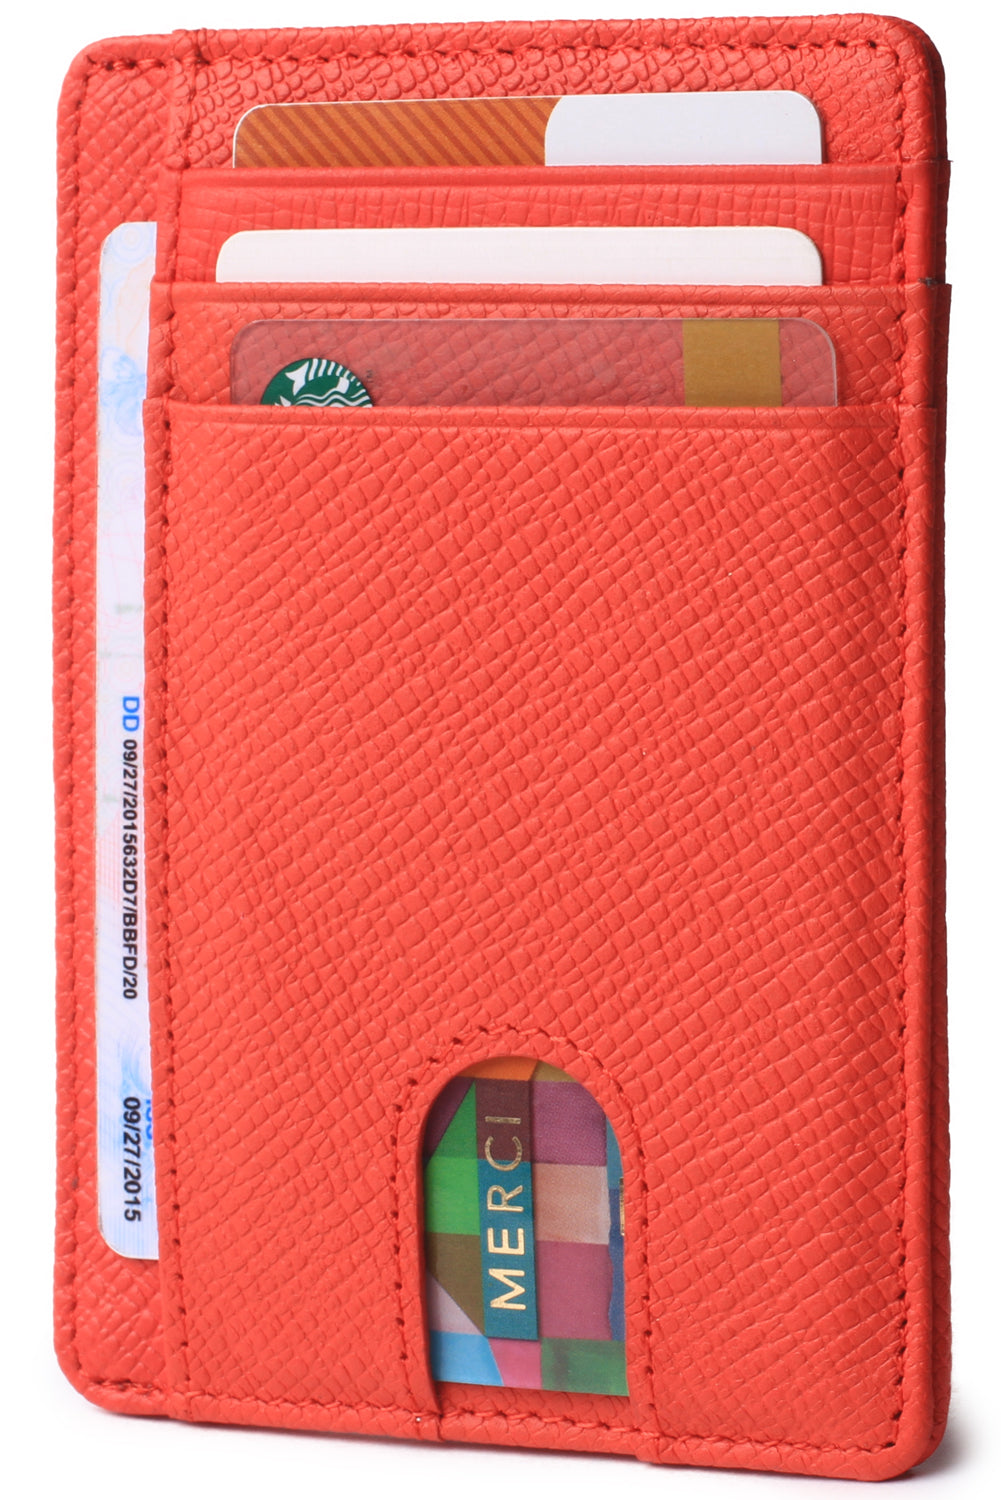 Slim Minimalist Front Pocket RFID Blocking Leather Wallets for Men & Women Red - Borgasets